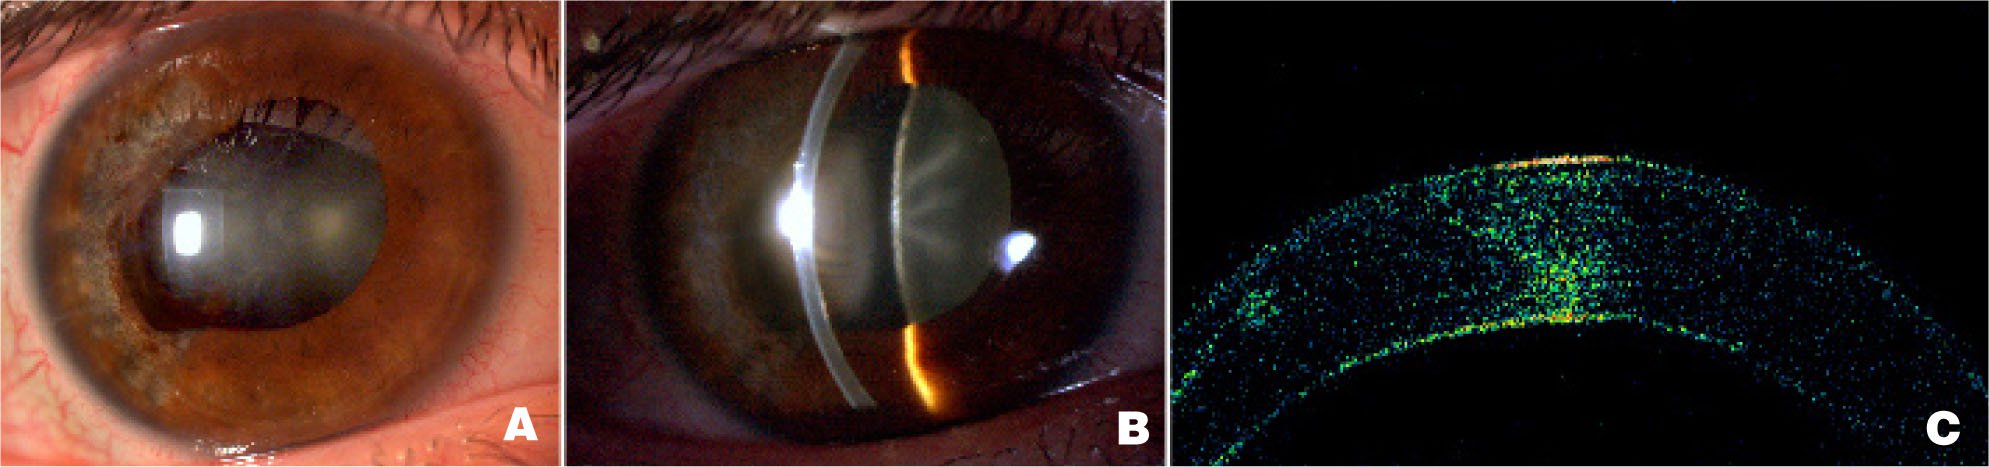 Images Show Post-Operation Images. Note No Detachment Is Seen on Slit Lamp or OCT. (A, B) Diffuse and Slit Beam Images, Respectively, of Cornea After Surgical Correction. (C) OCT Confirming DM Attachent After Surgery.